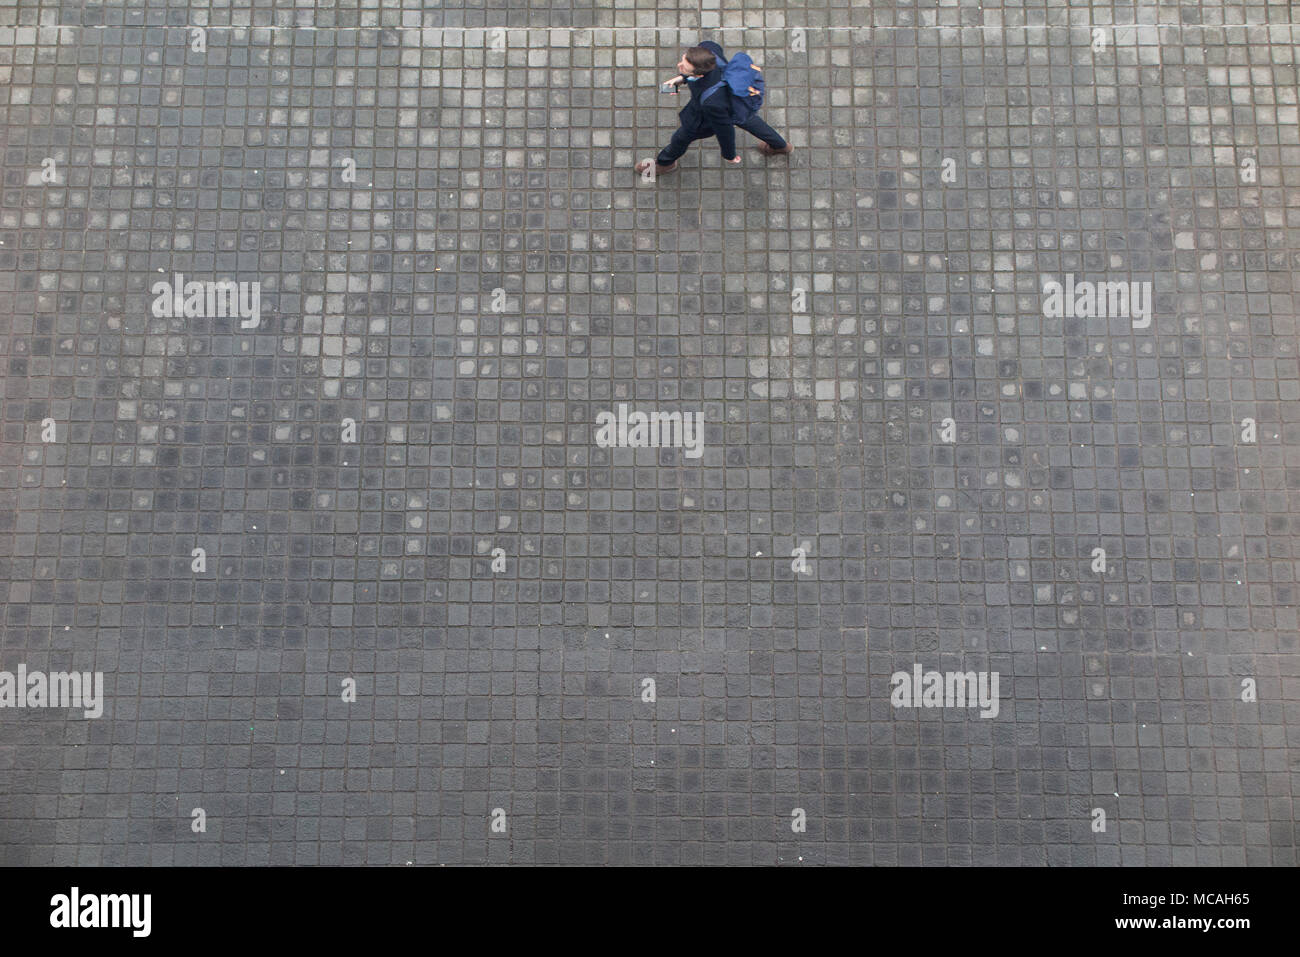 Looking down from high above on a pedestrian taking wide steps, walking along a cobbled pavement - Stock Image